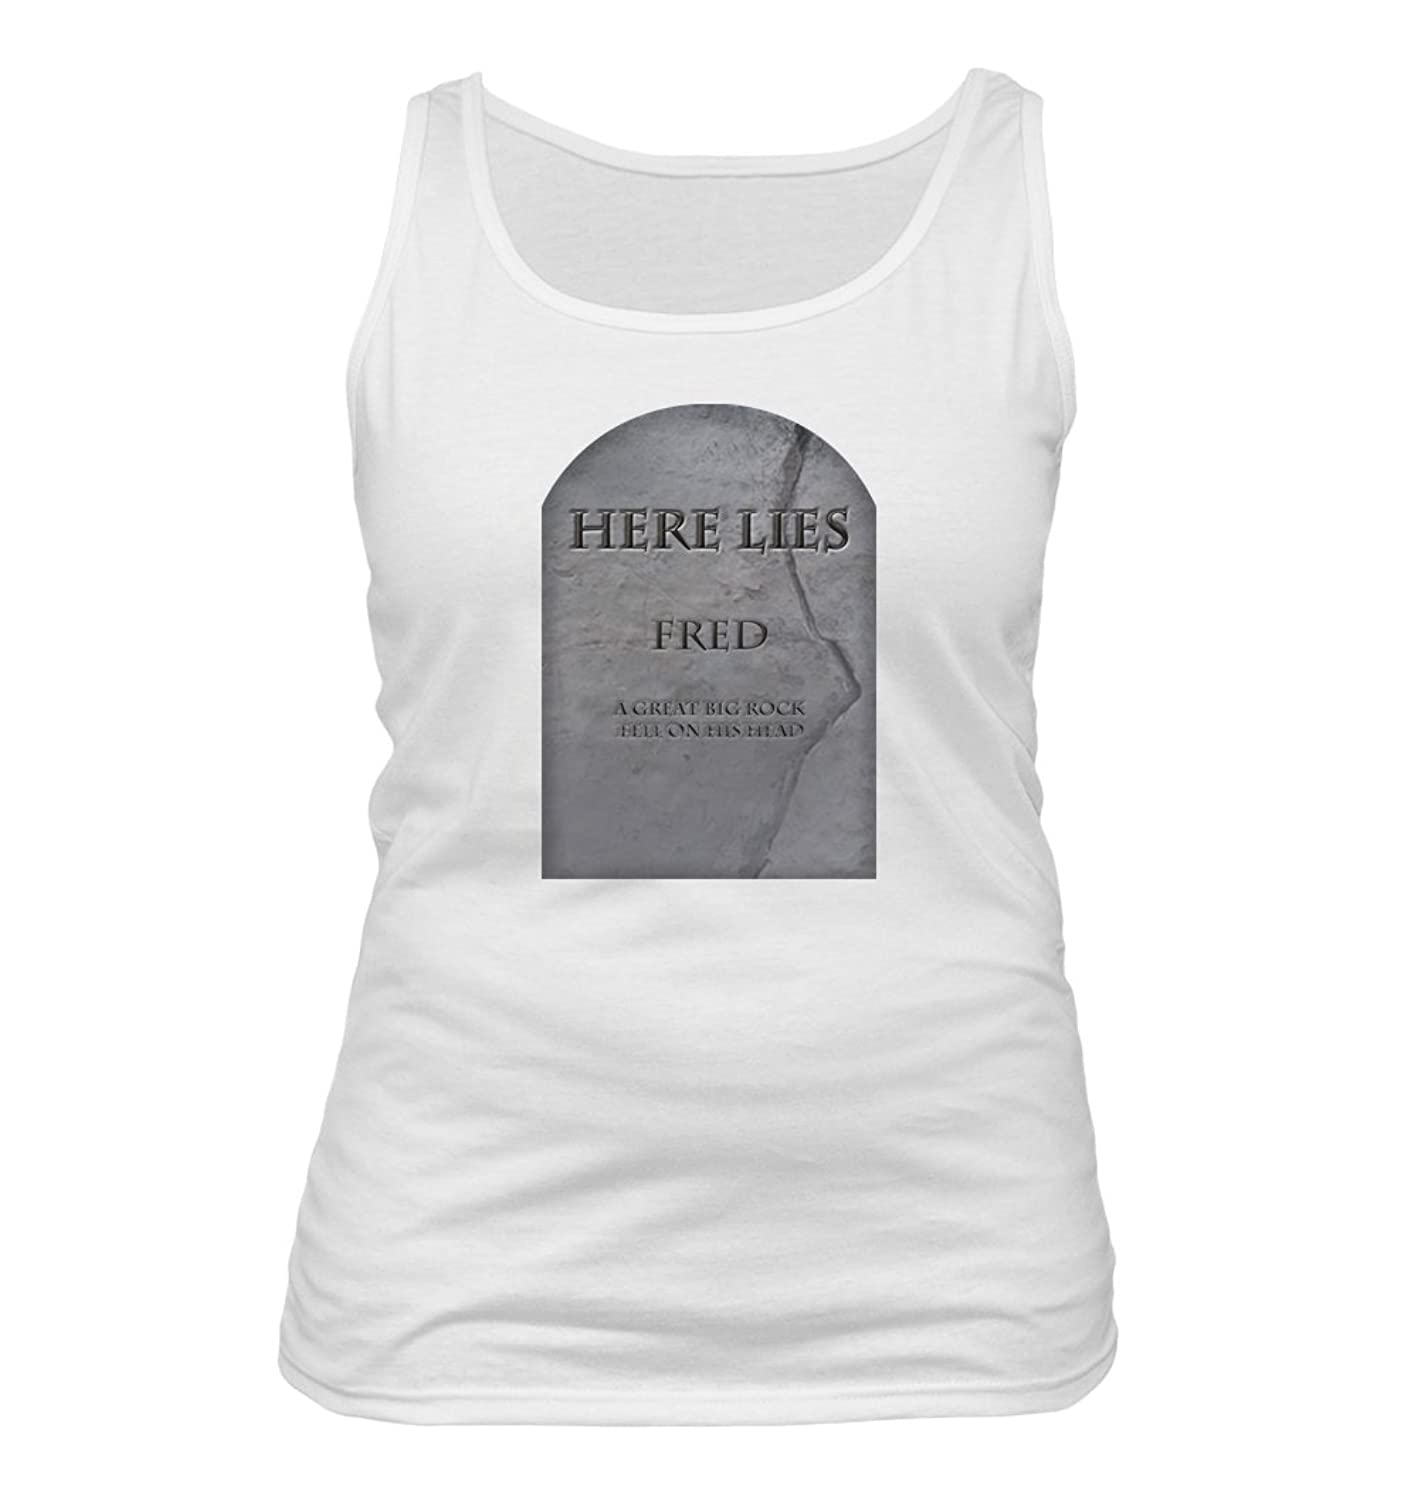 Fred #124 - Adult Women's Tank Top